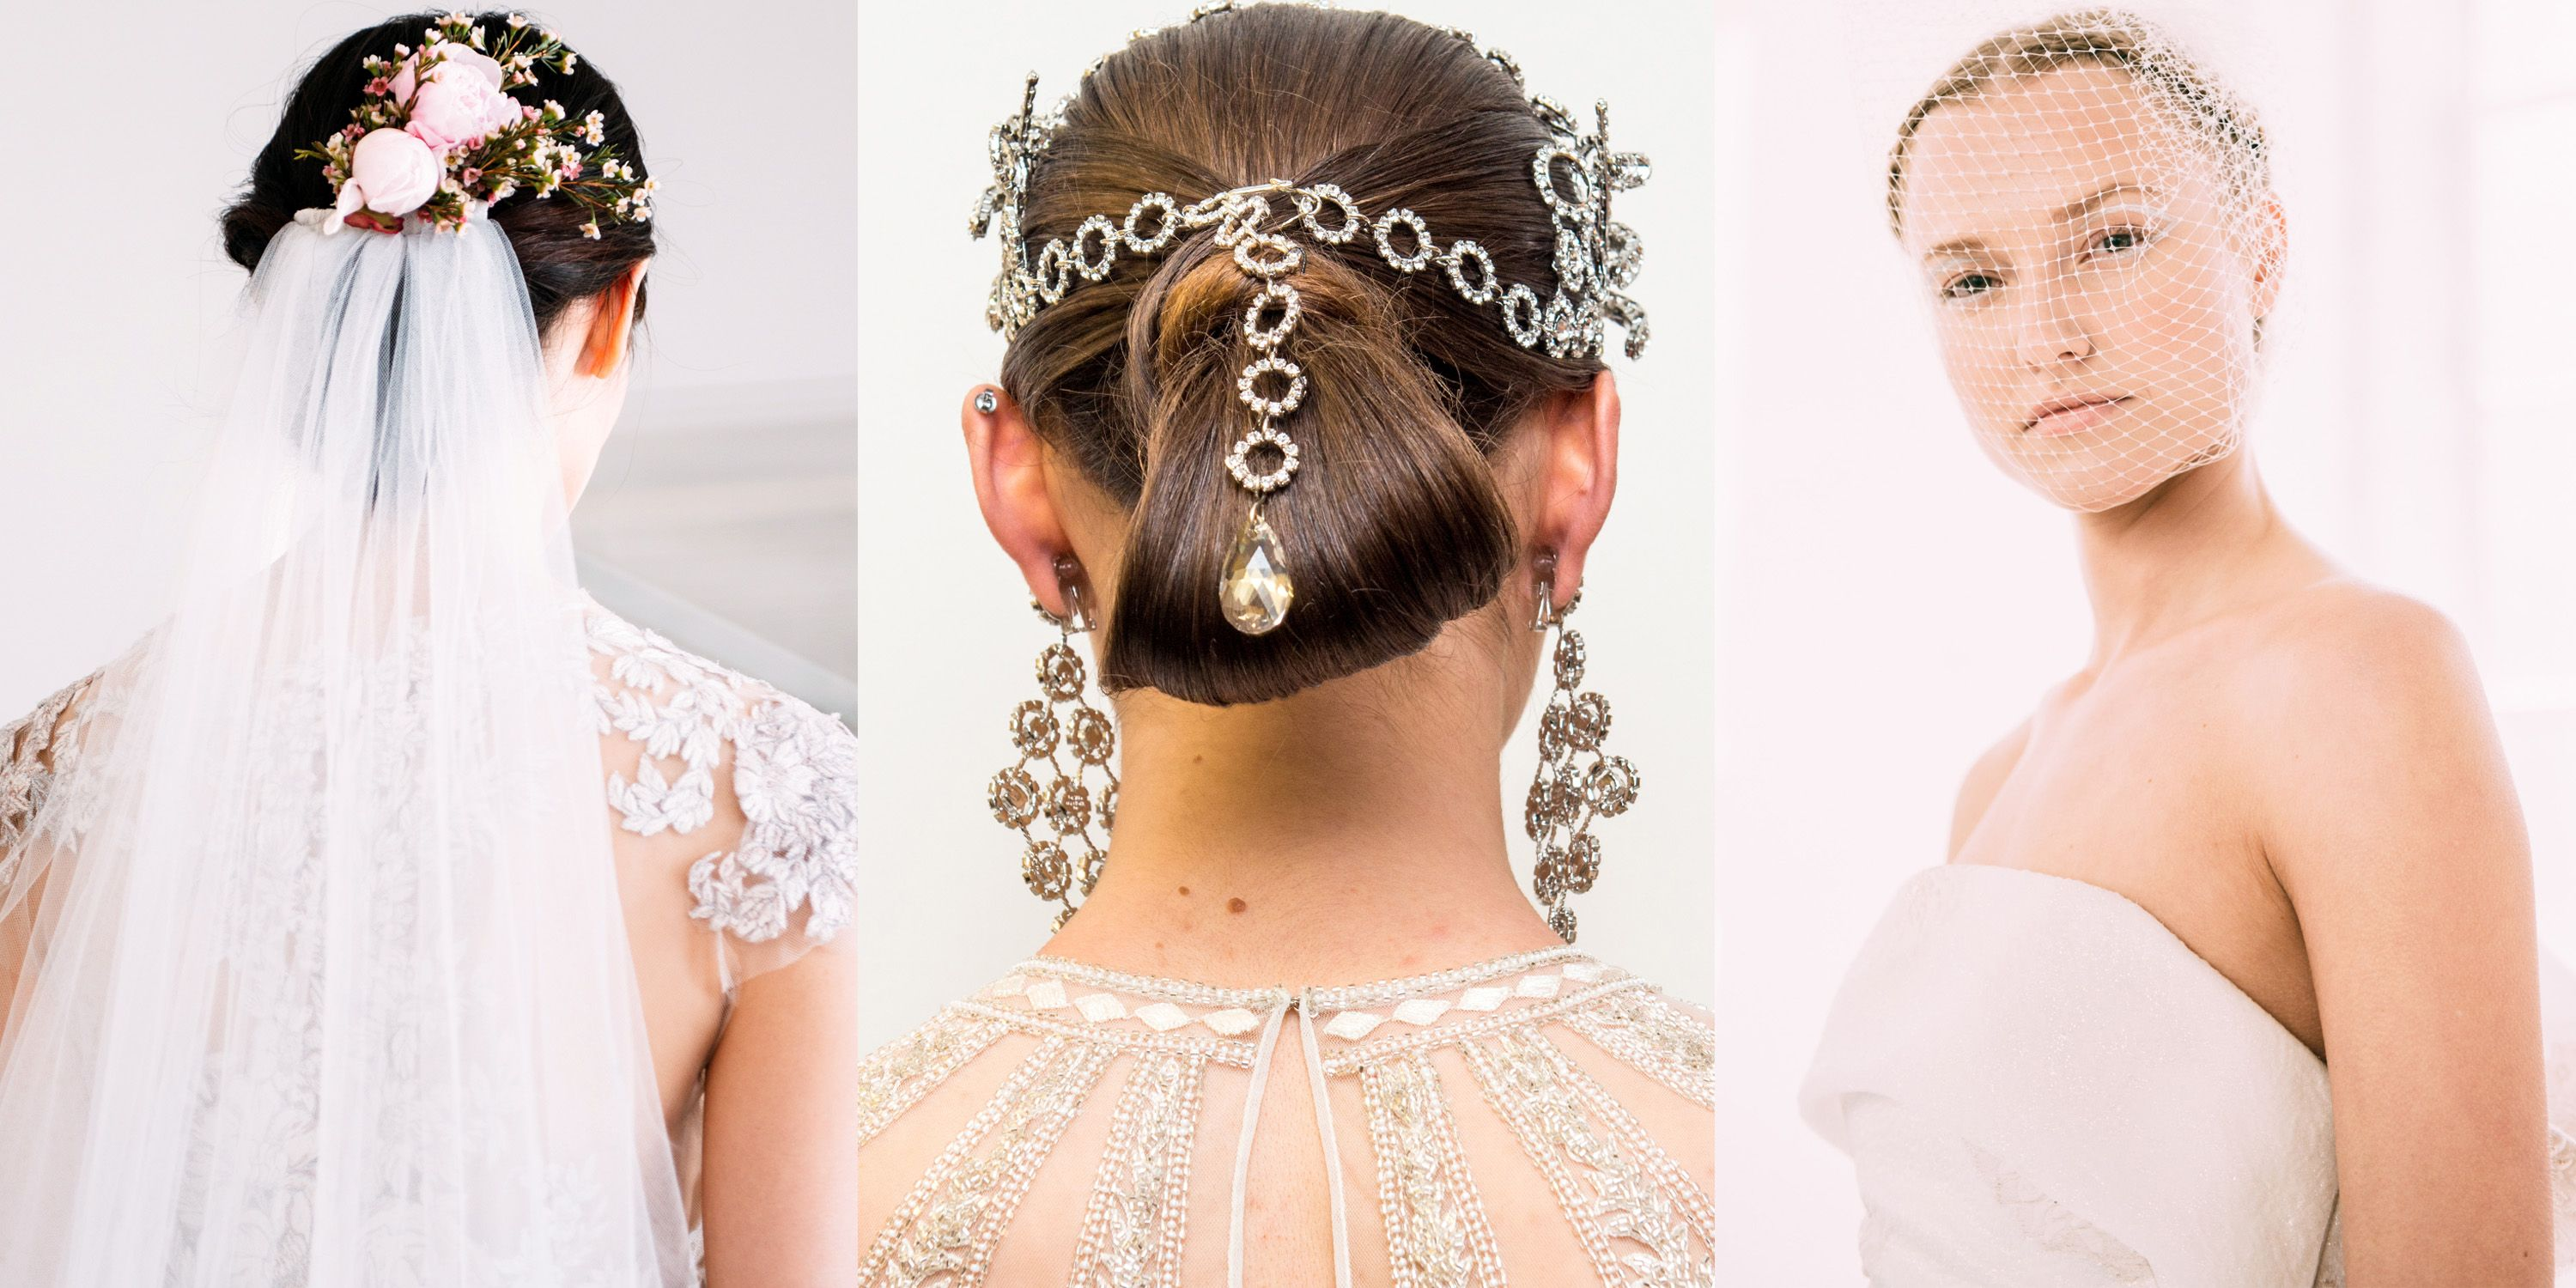 wedding hair and makeup inspiration from spring 2017 bridal